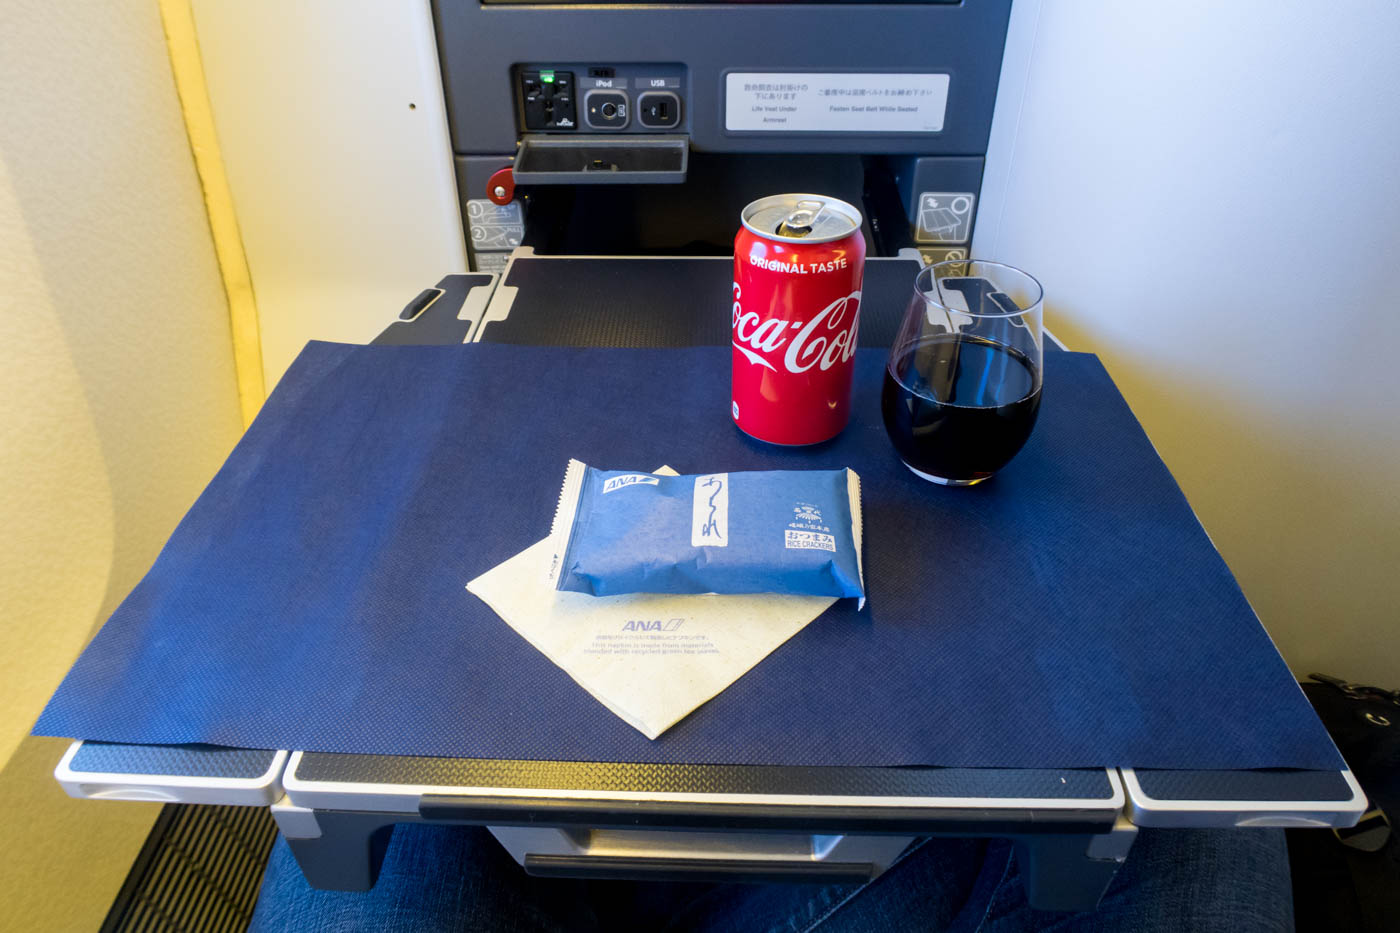 Coke and Snack